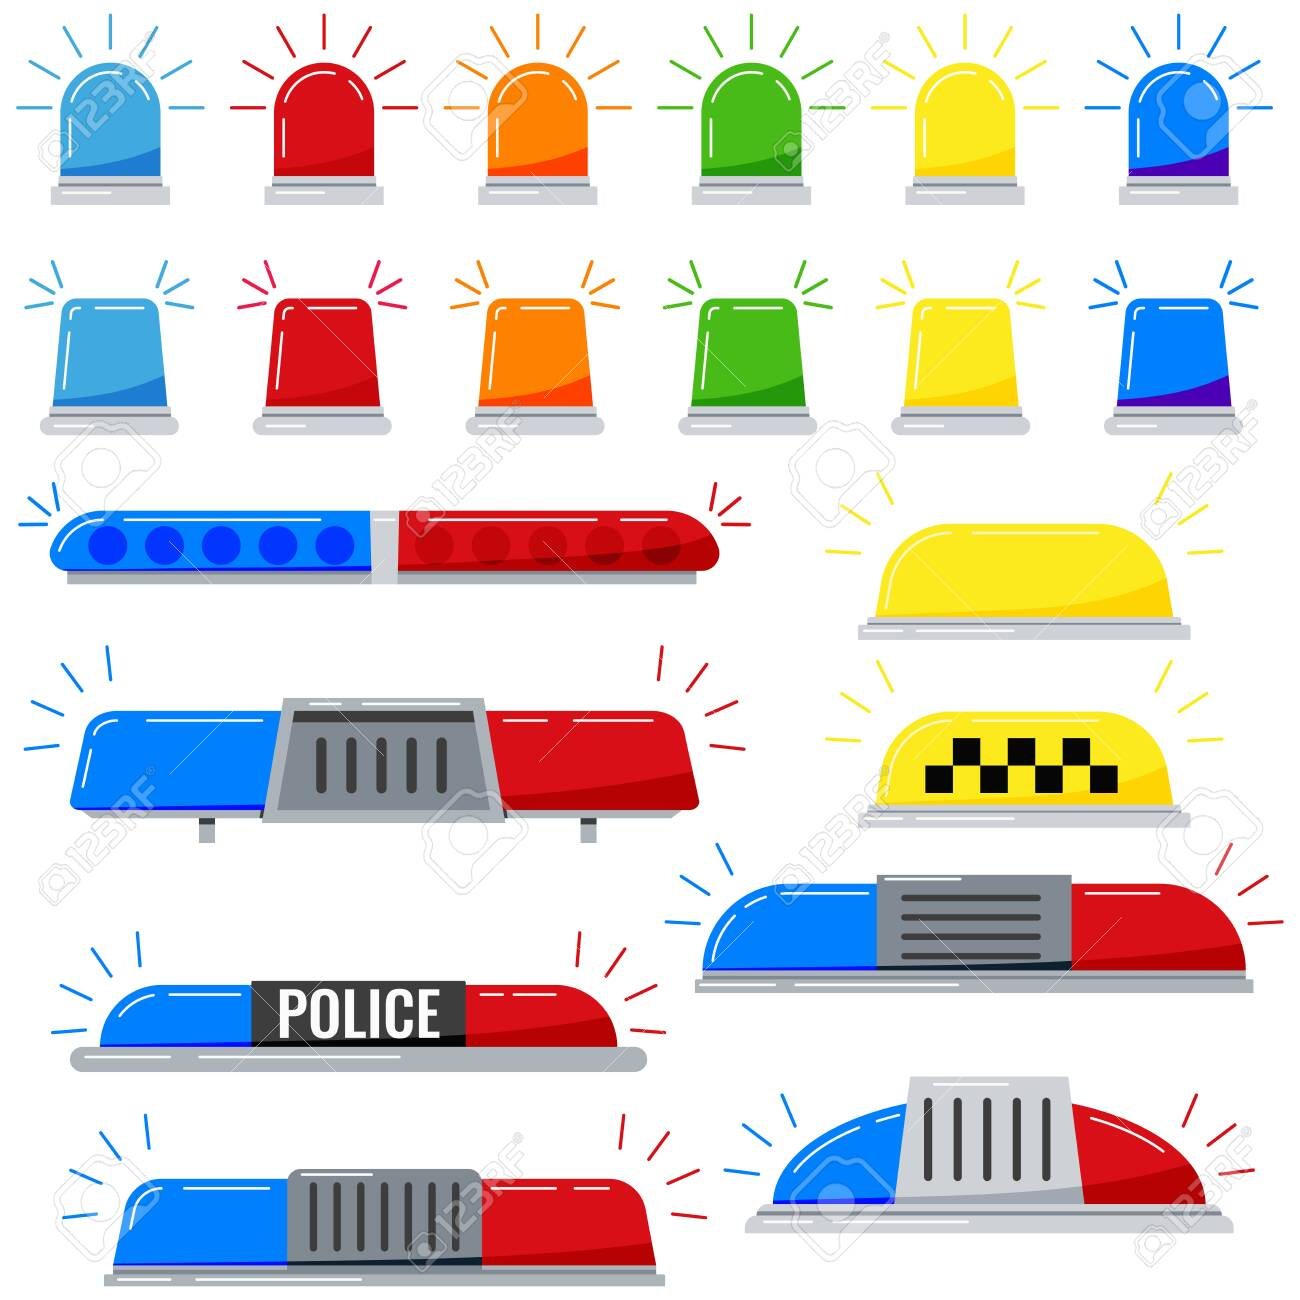 Flashers siren vector icon set isolated on white background. Red, blue, yellow, orange, green color alert flashing lights in a flat style. Siren police or ambulance light. - 139361033